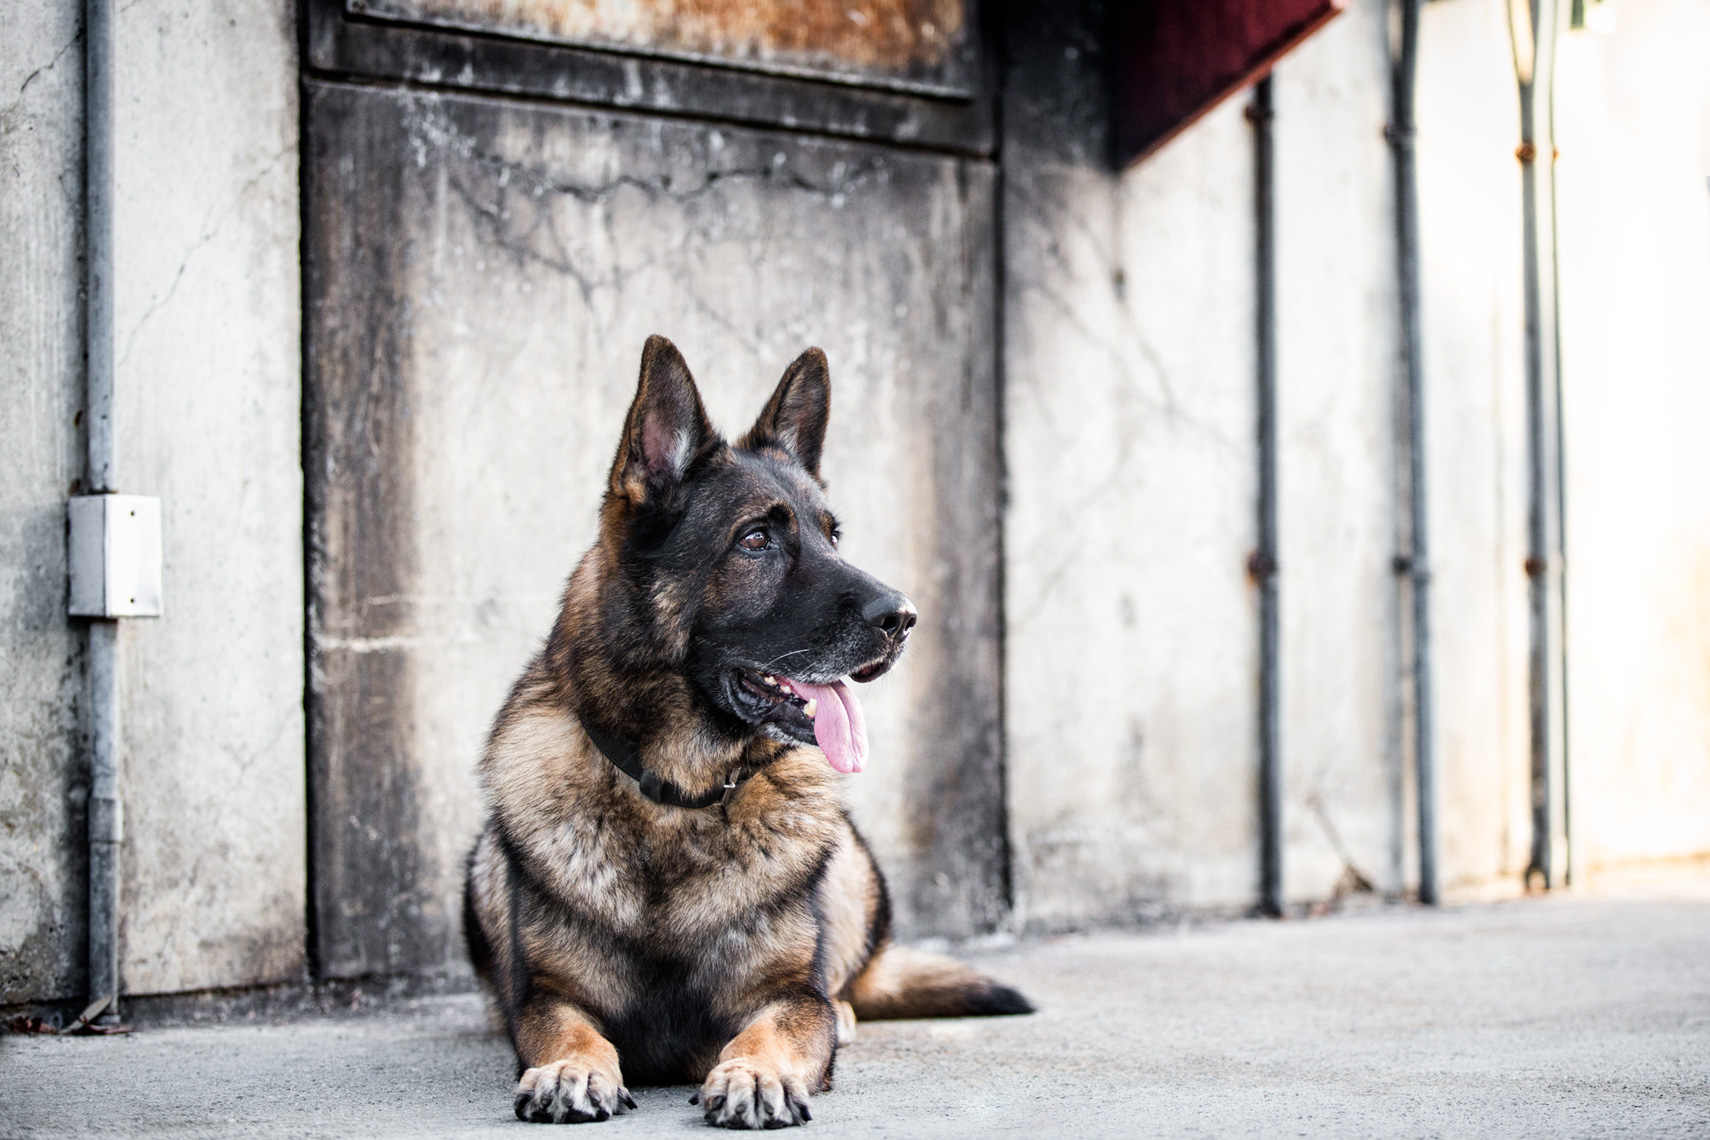 Los Angeles Dog Photography, Michael Brian, pet, cat, German Shepherd K-9 laying down, alert, SBPD, Santa Barbara Police